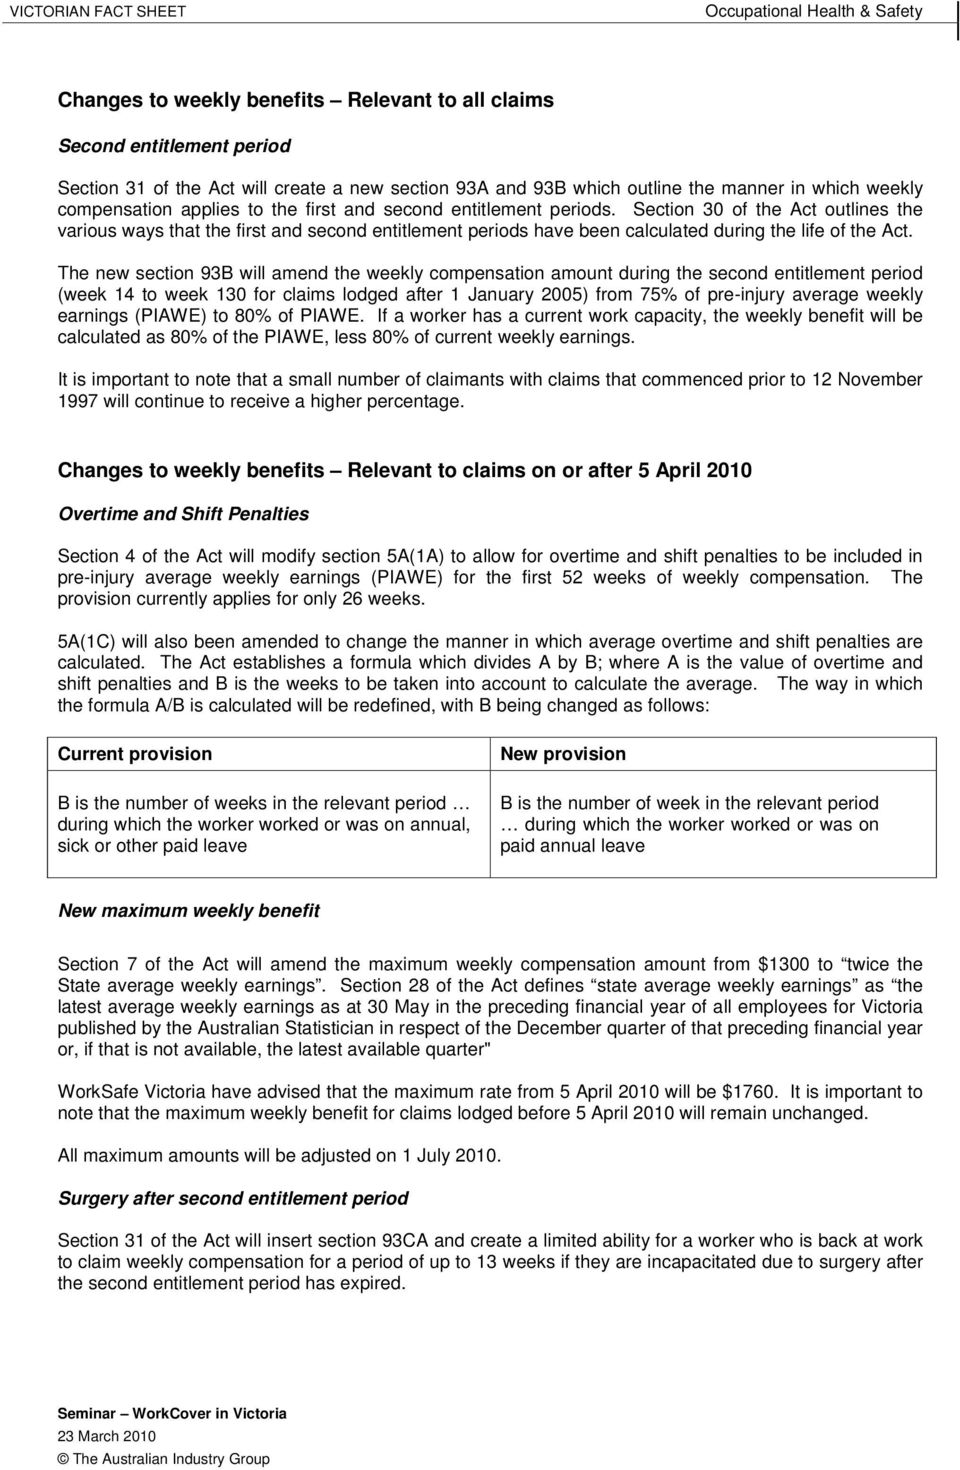 The new section 93B will amend the weekly compensation amount during the second entitlement period (week 14 to week 130 for claims lodged after 1 January 2005) from 75% of pre-injury average weekly